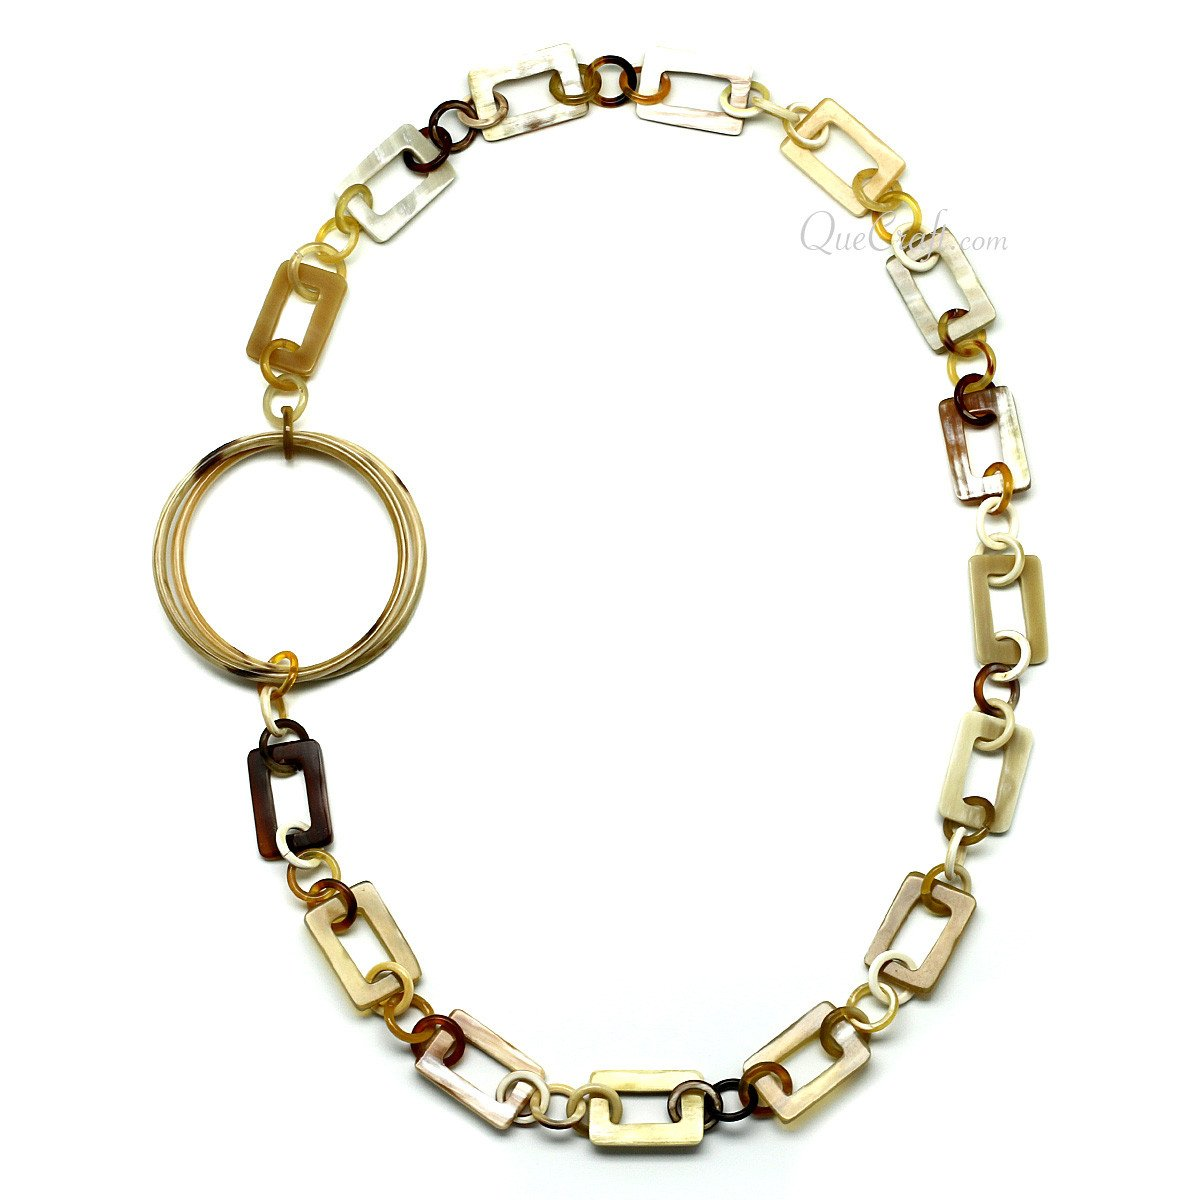 Horn Chain Necklace #11654 - HORN.JEWELRY by QueCraft